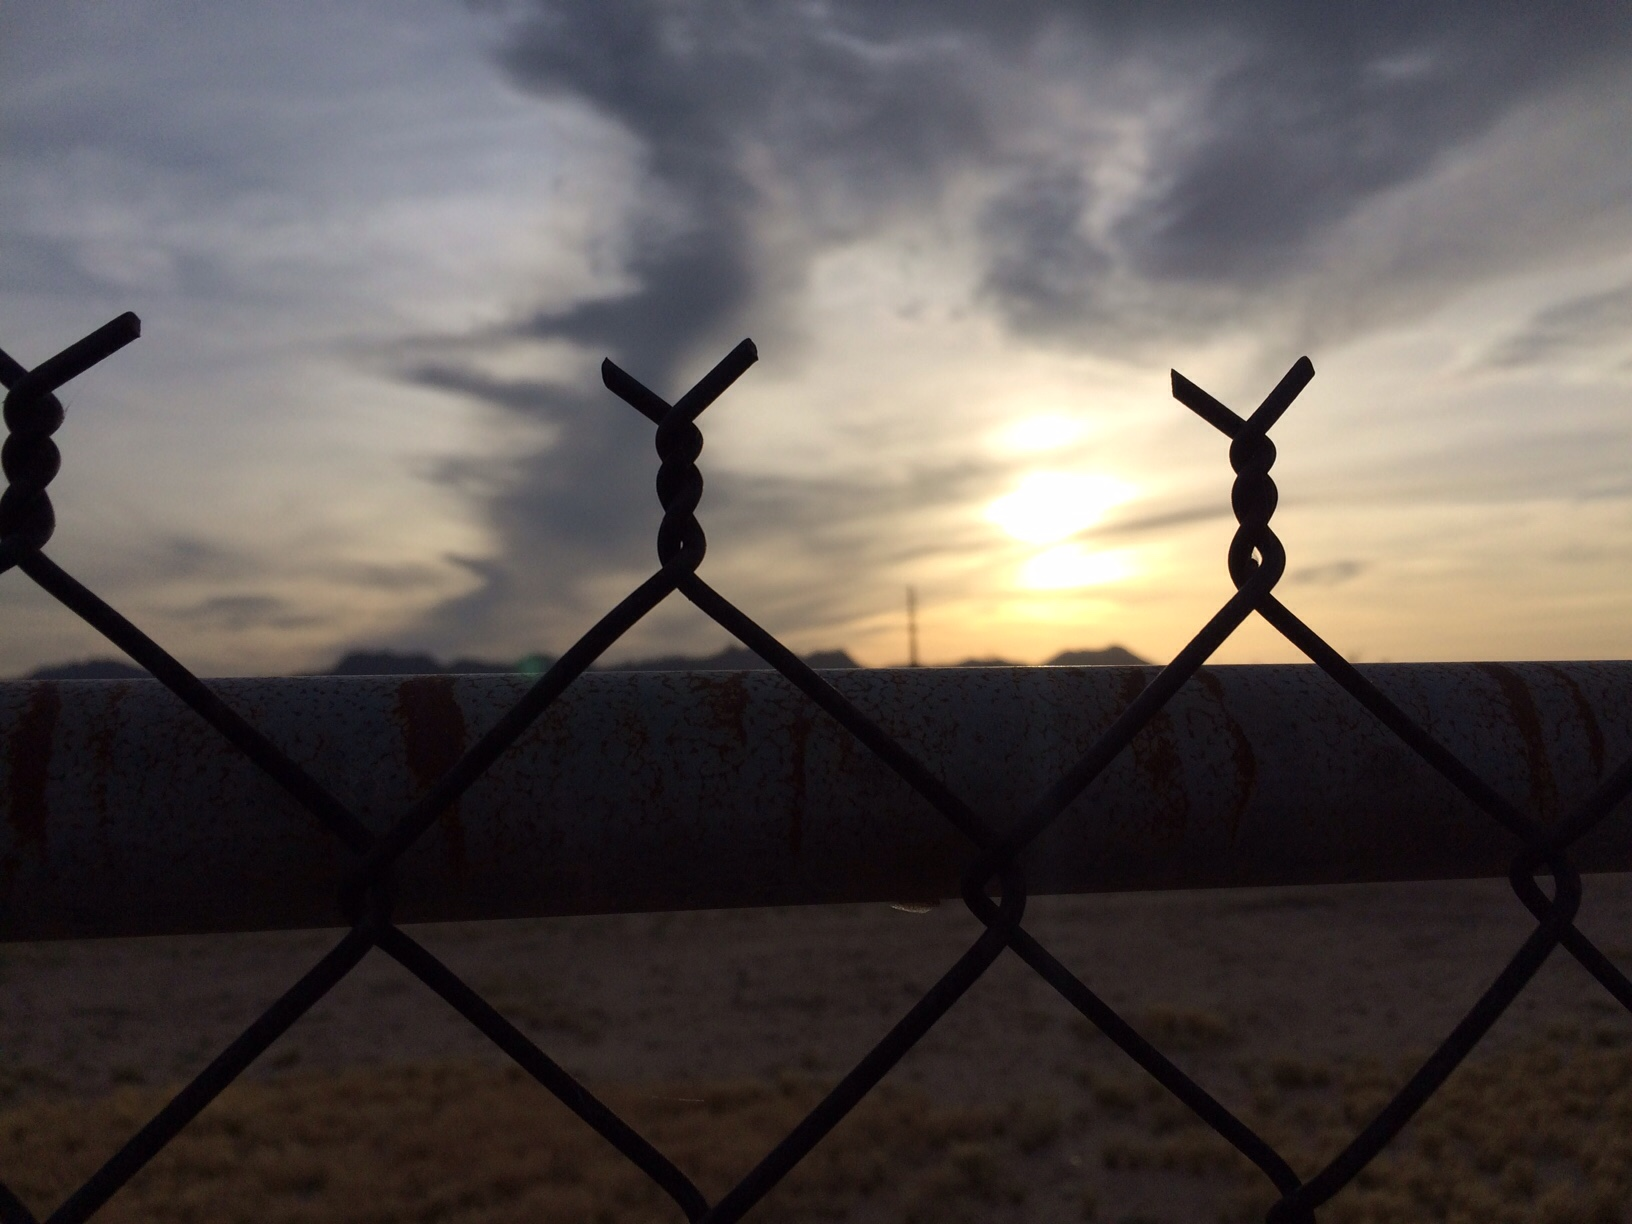 Sunset from barbed wire fence